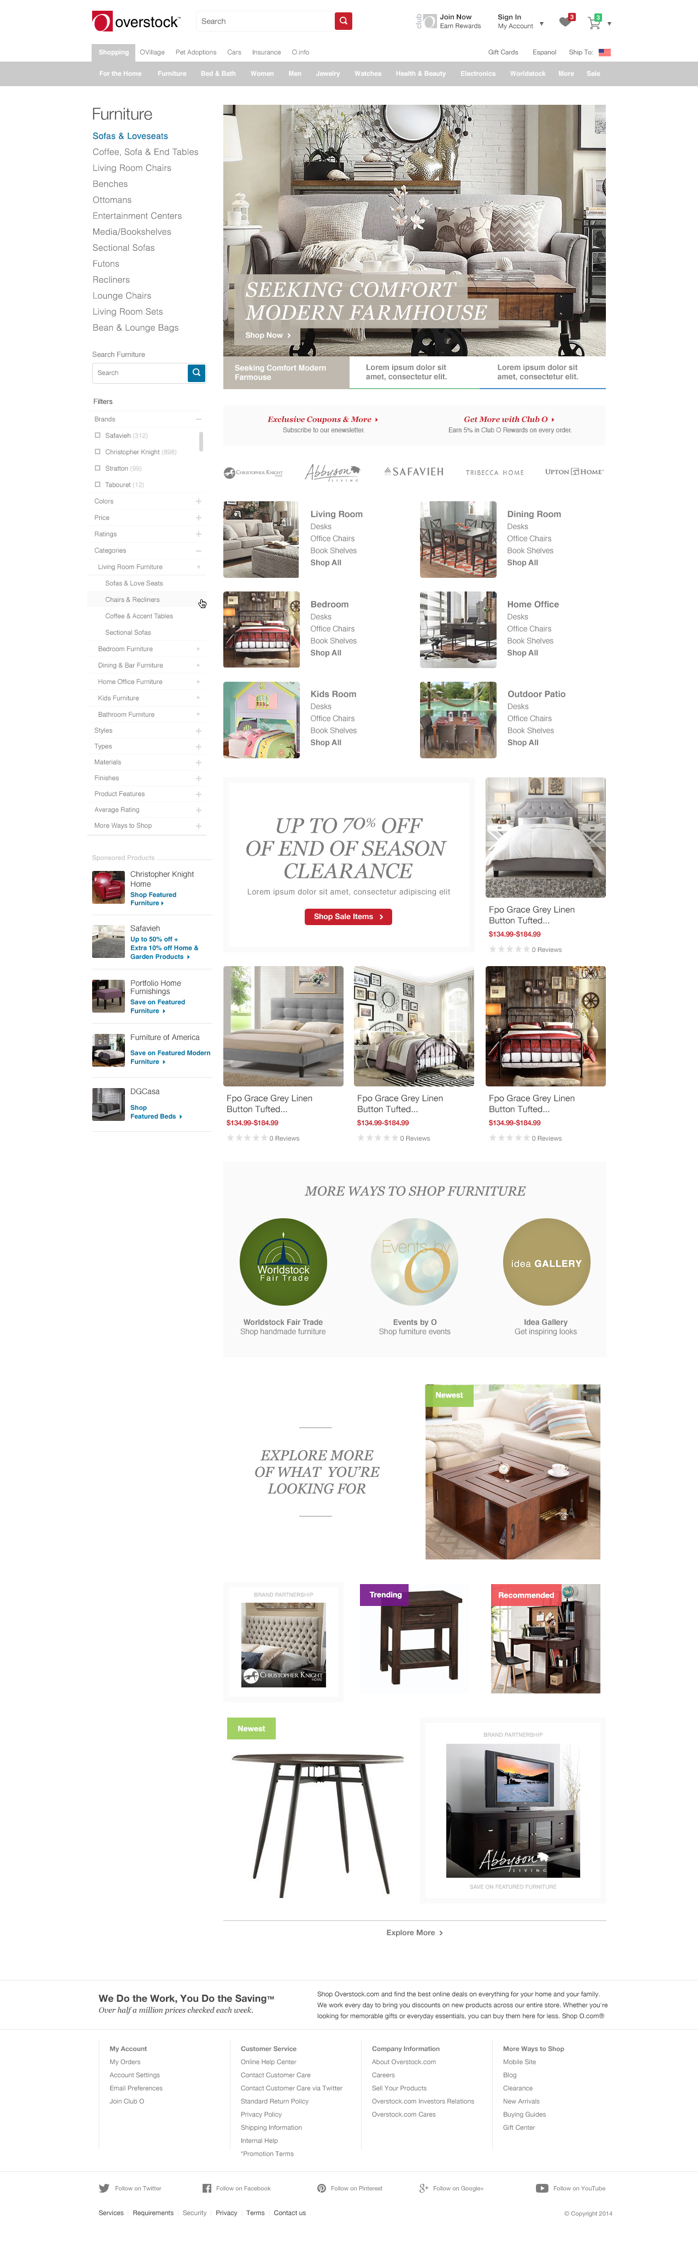 Overstock_Furniture_0913a.png